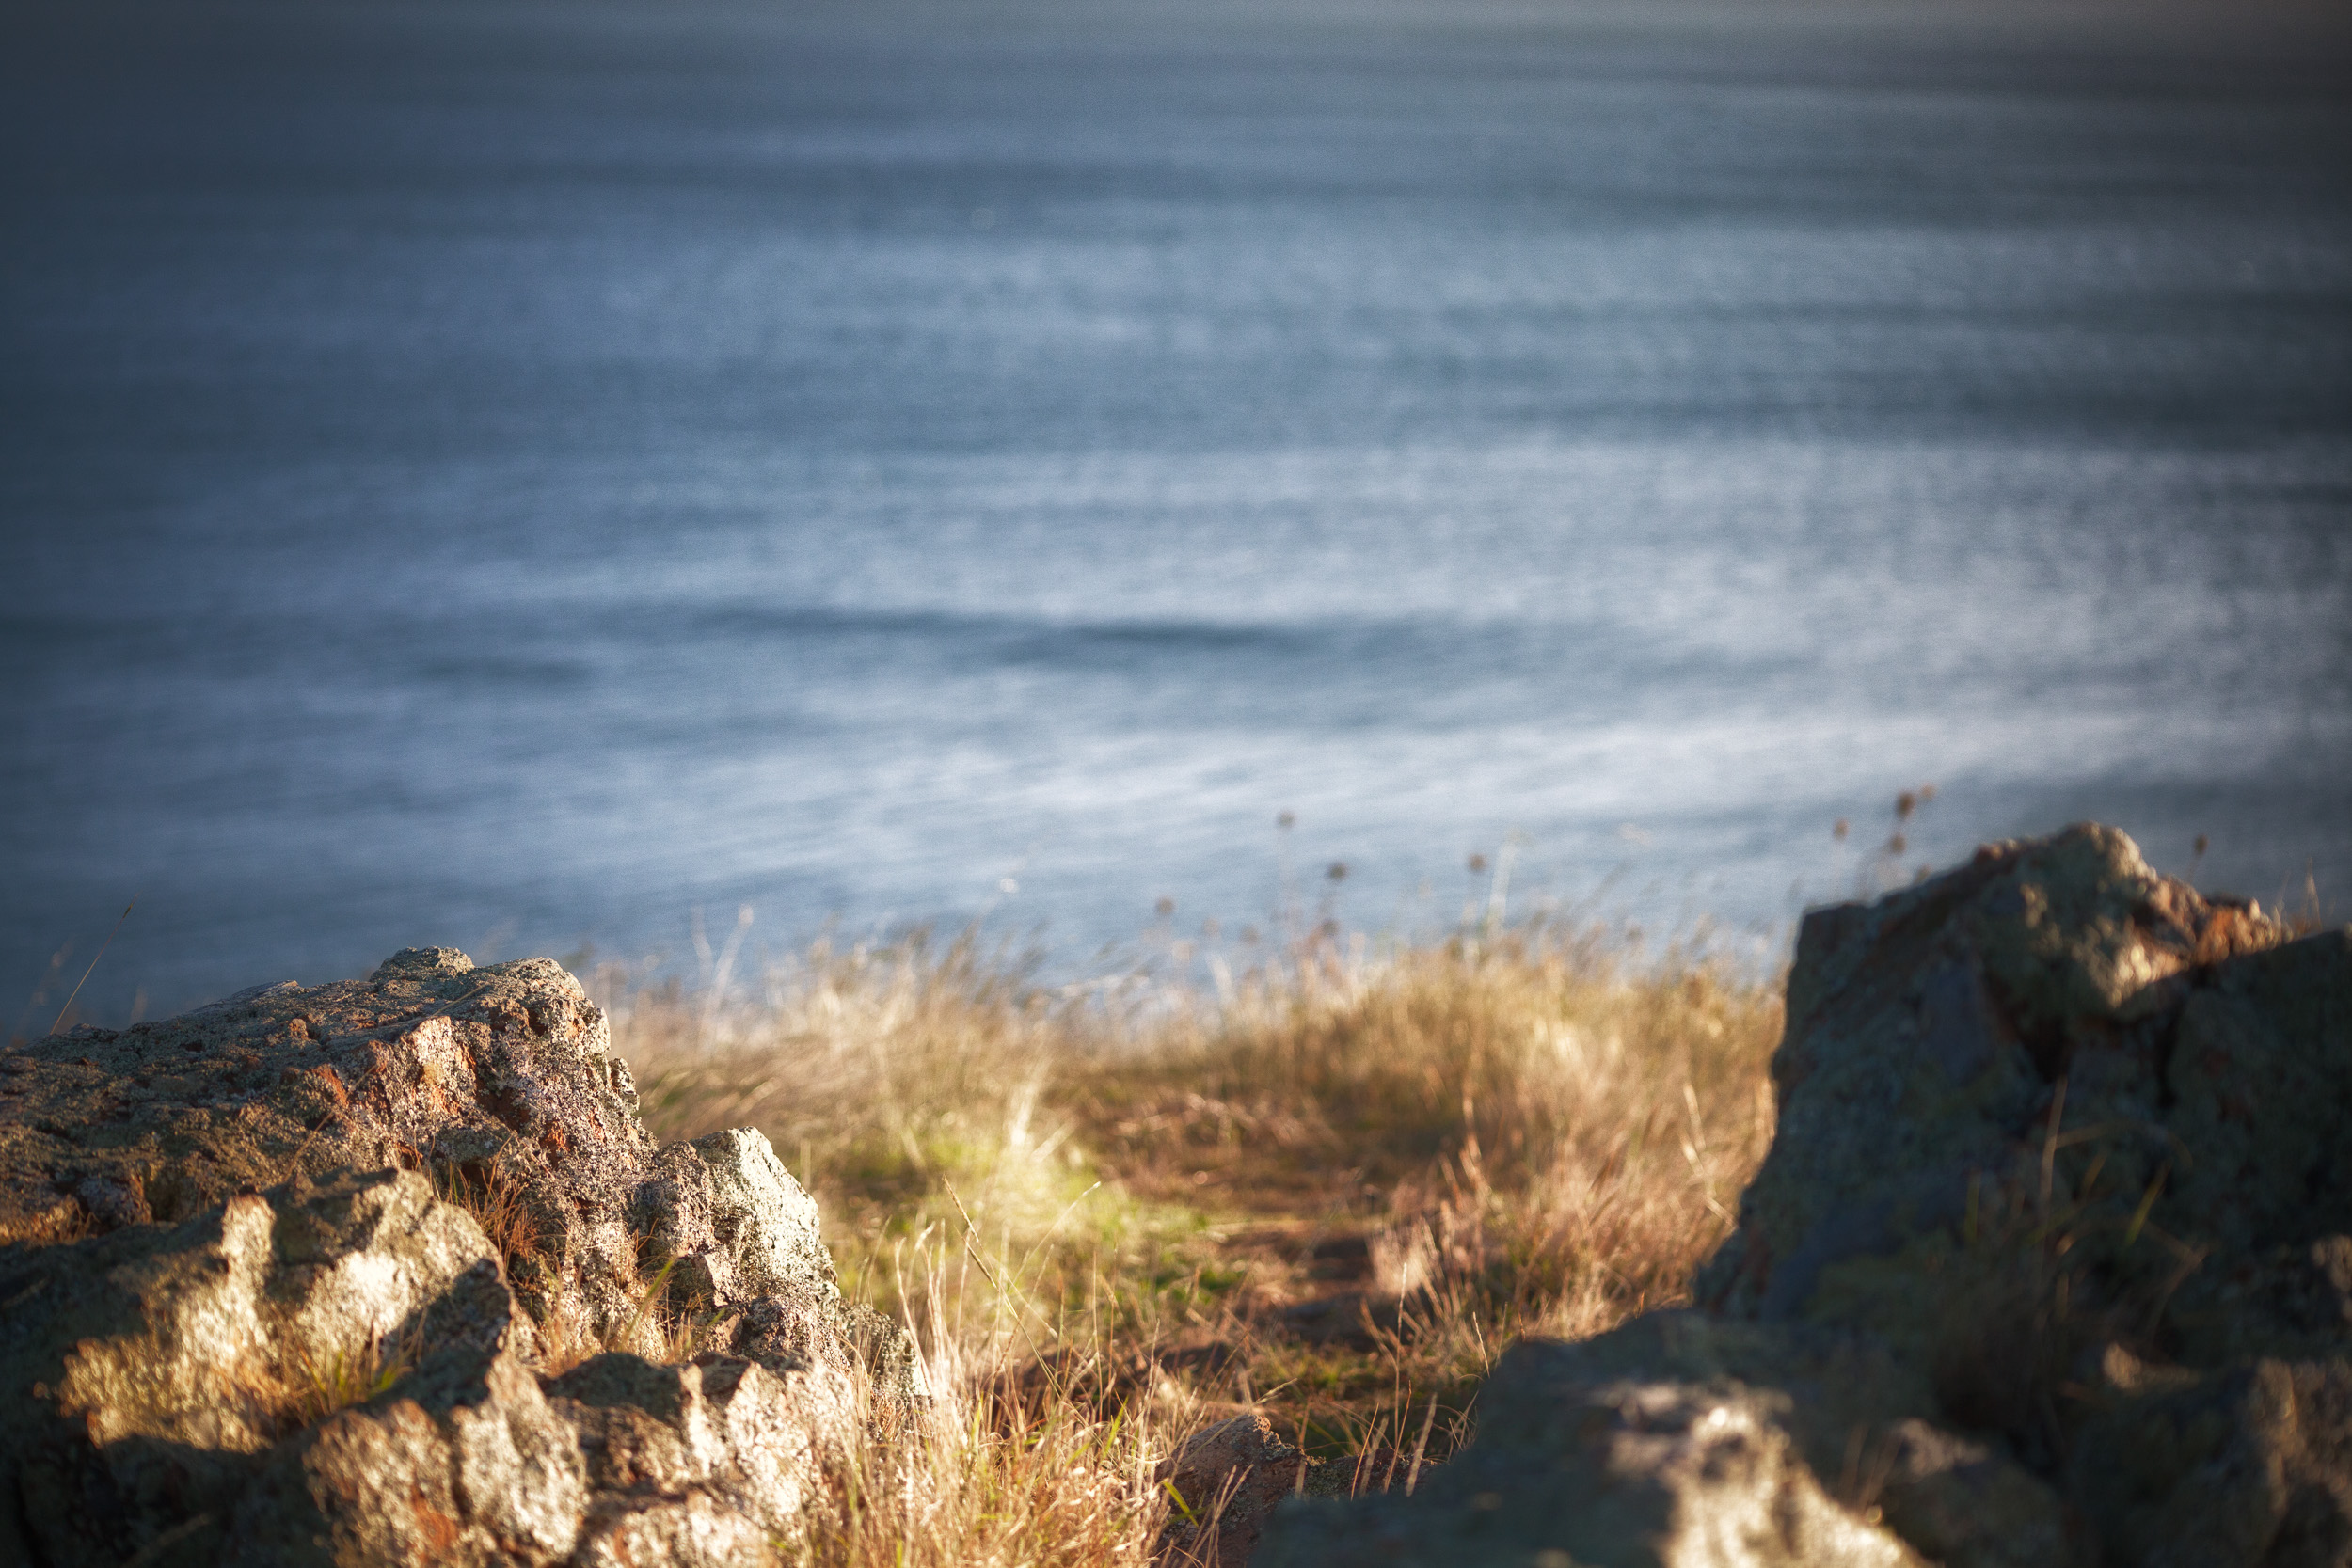 rocks and grasses - looking out to sea by leonie wise